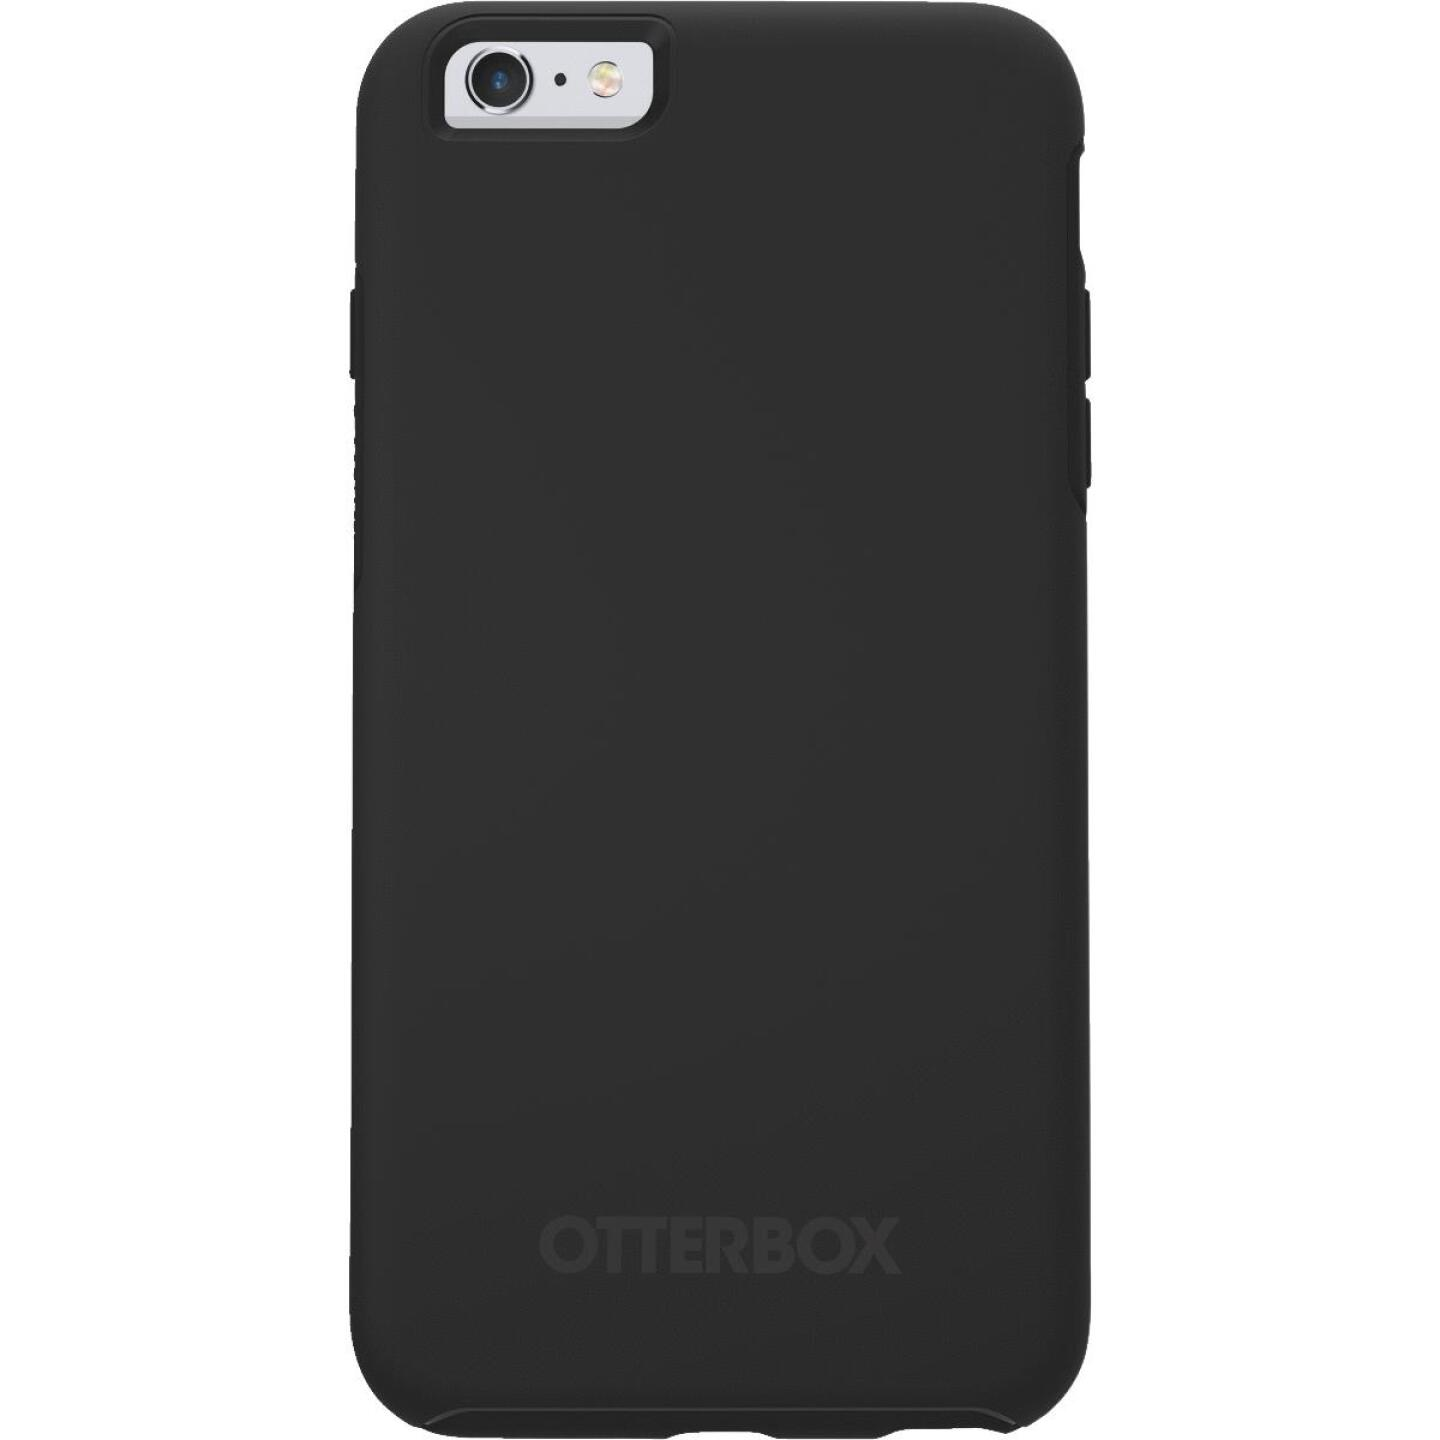 Otterbox Symmetry Series iPhone 7 Black Cell Phone Case Image 2